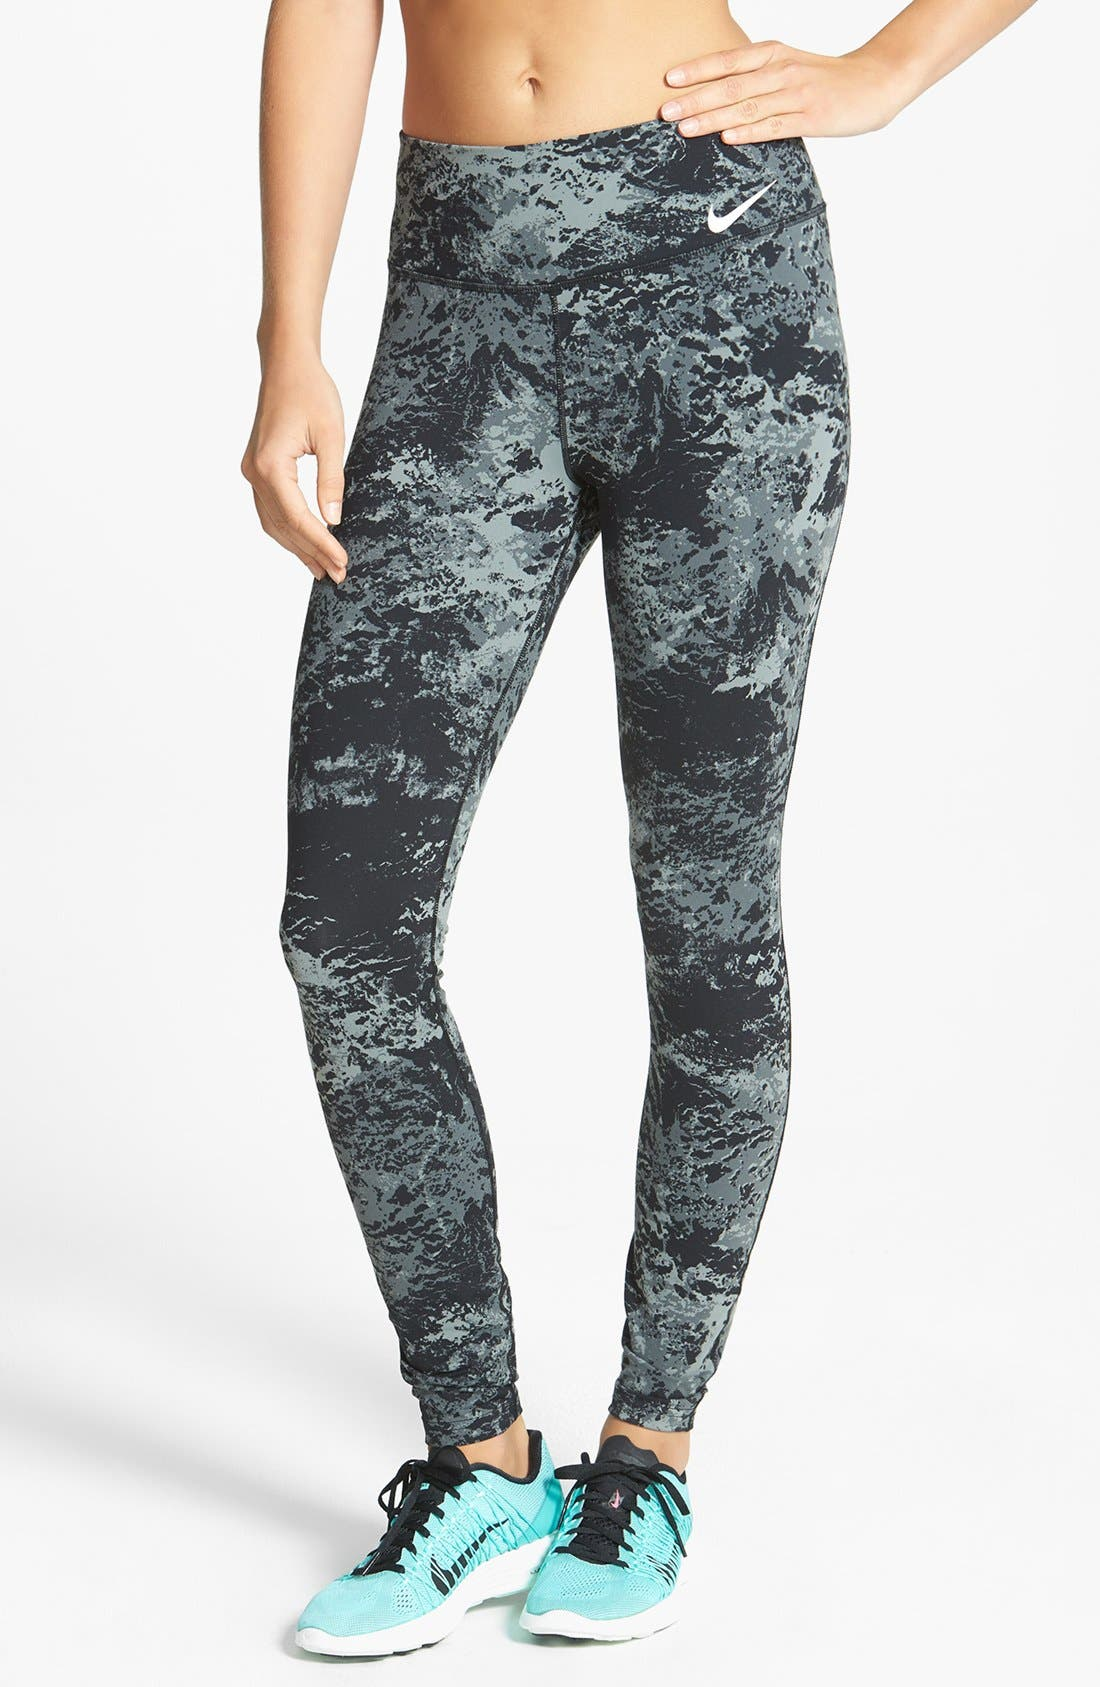 Main Image - Nike 'Legendary' Print Dri-FIT Tights (Online Only)